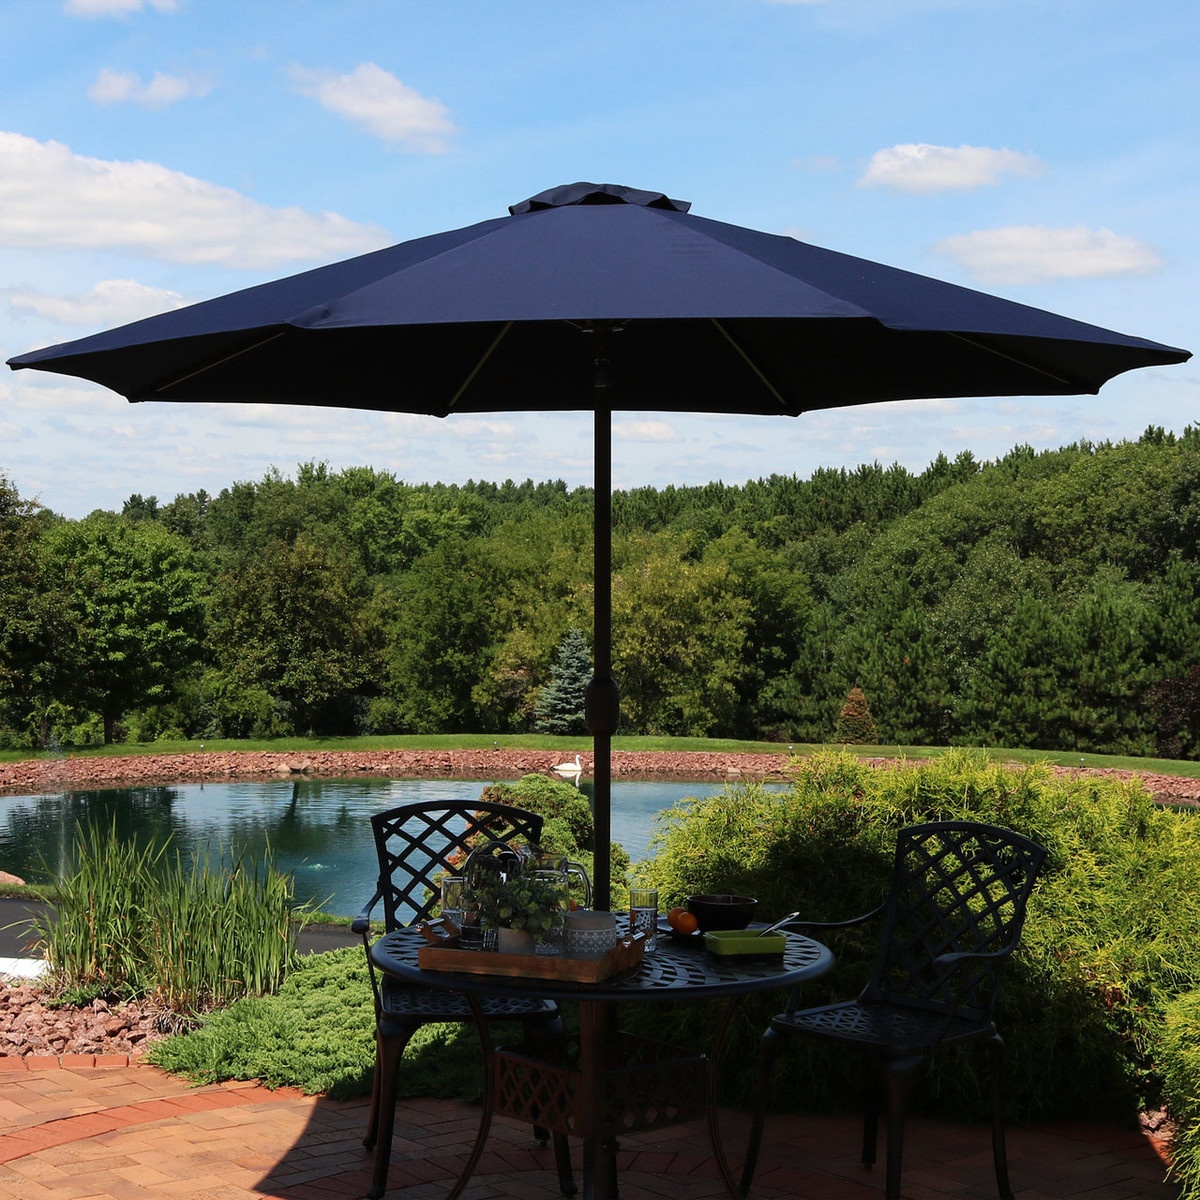 Phenomenal Sunnydaze 9 Foot Aluminum Sunbrella Market Umbrella With Gmtry Best Dining Table And Chair Ideas Images Gmtryco